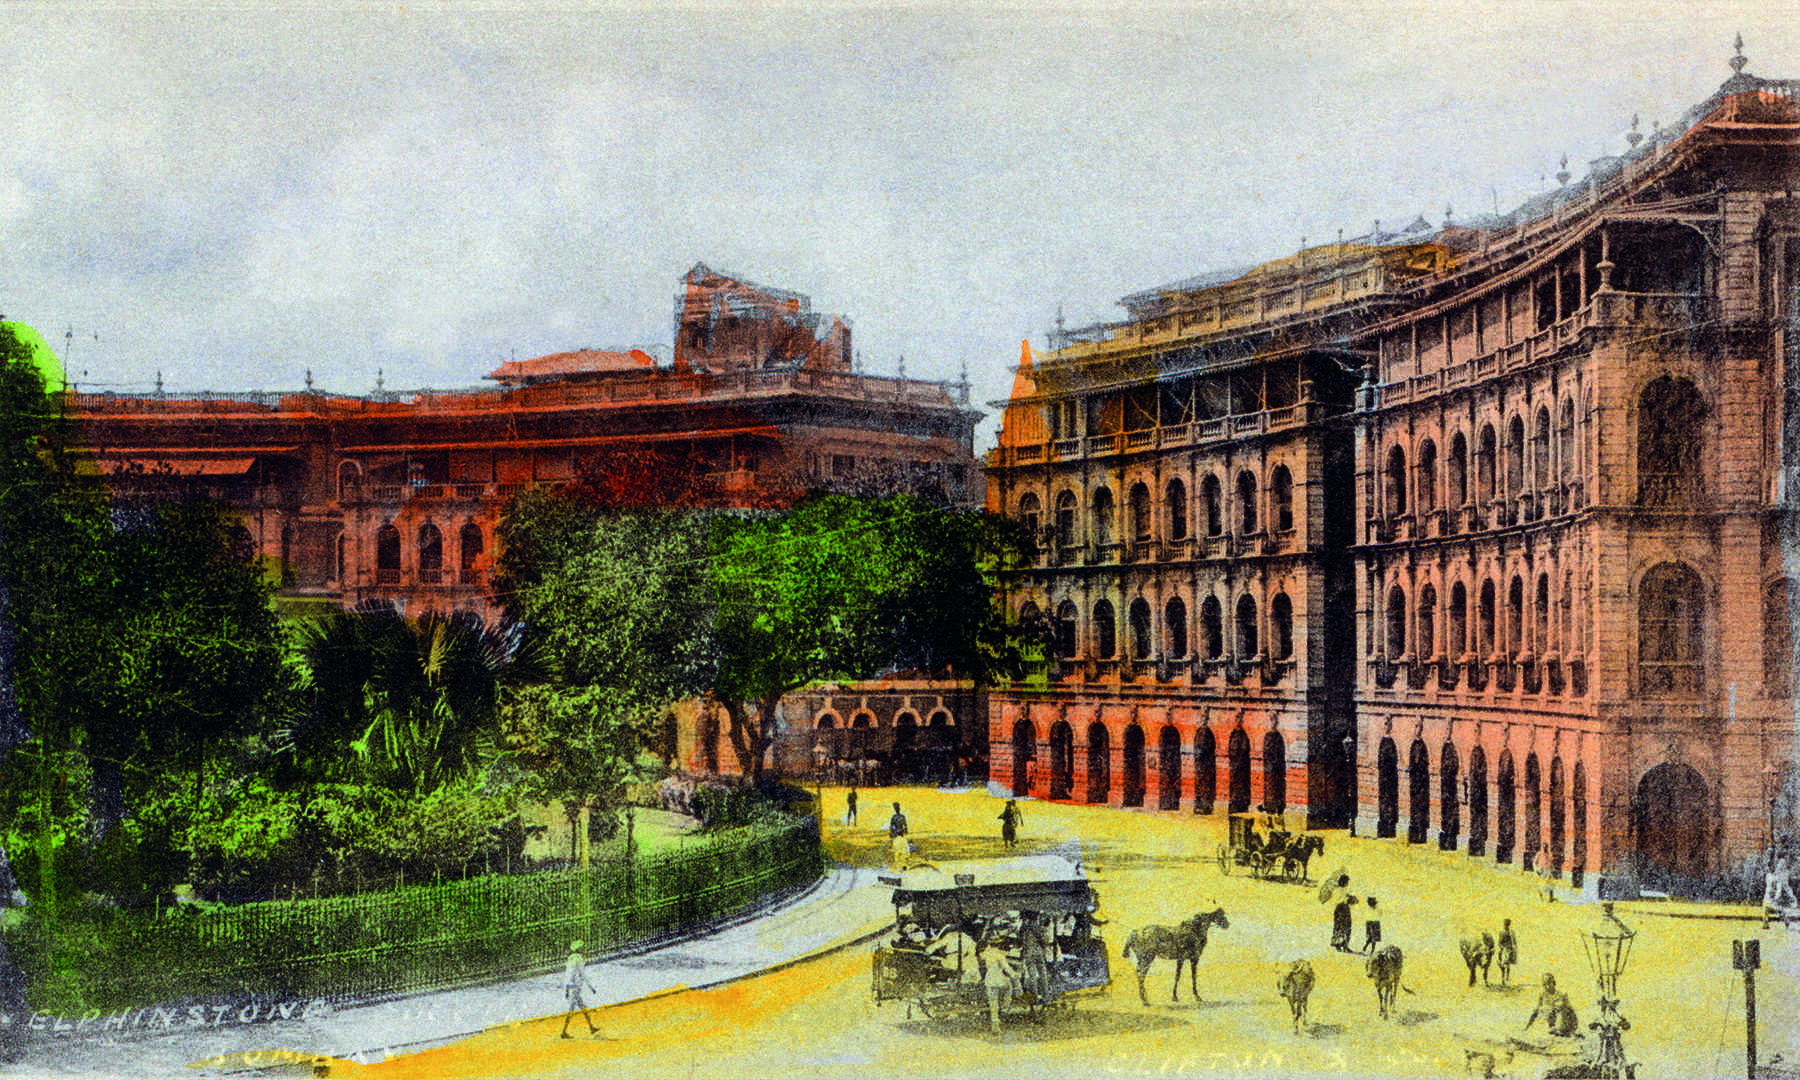 Elphinstone Circle, Bombay, by Clifton & Co., c. 1903. Handcoloured collotype, Undivided back, 12.1 x 8.8 cm, 4.76 x 3.46 in.